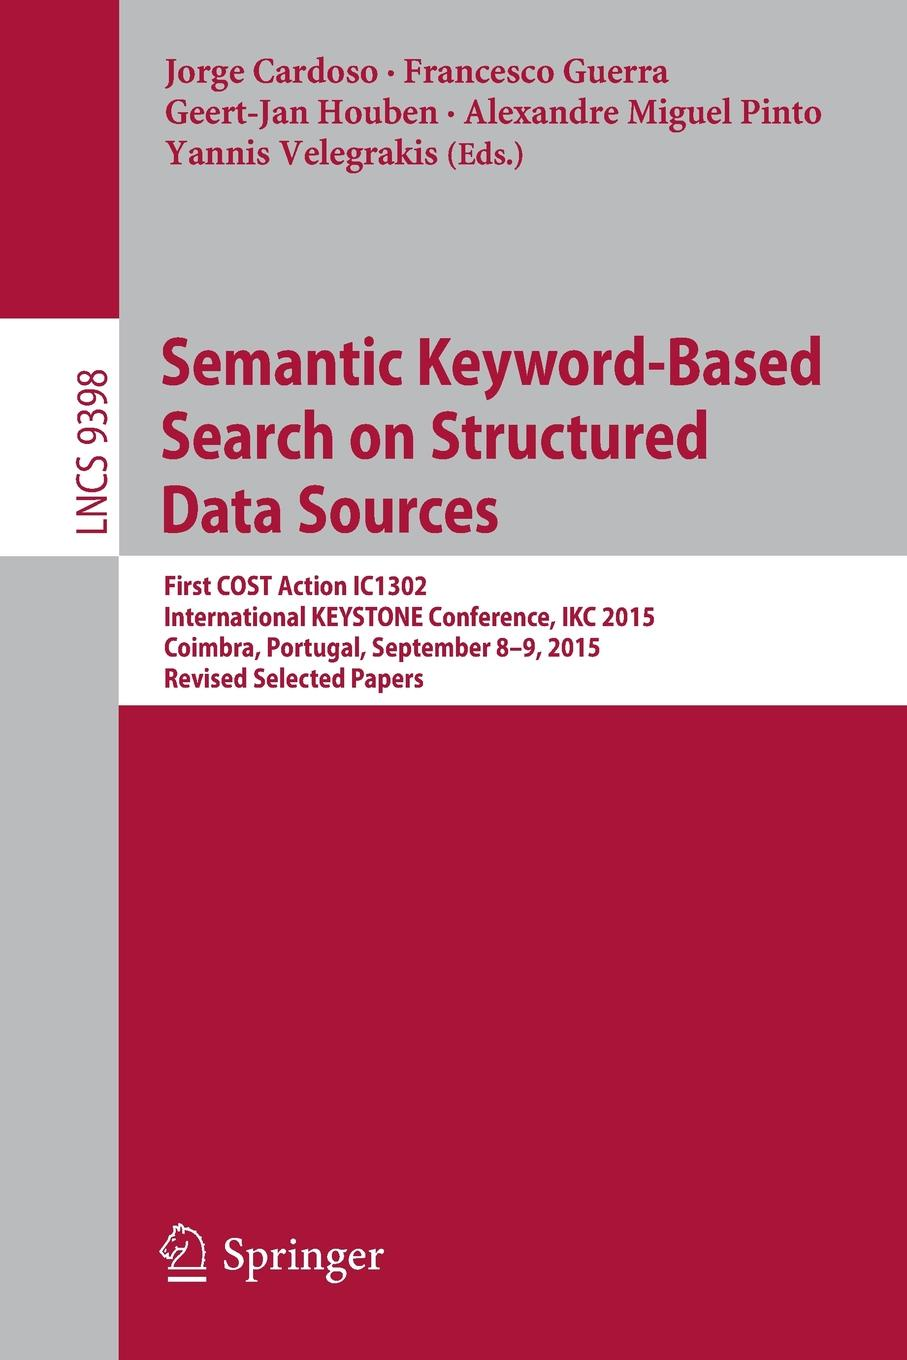 лучшая цена Semantic Keyword-based Search on Structured Data Sources. First COST Action IC1302 International KEYSTONE Conference, IKC 2015, Coimbra, Portugal, September 8-9, 2015. Revised Selected Papers